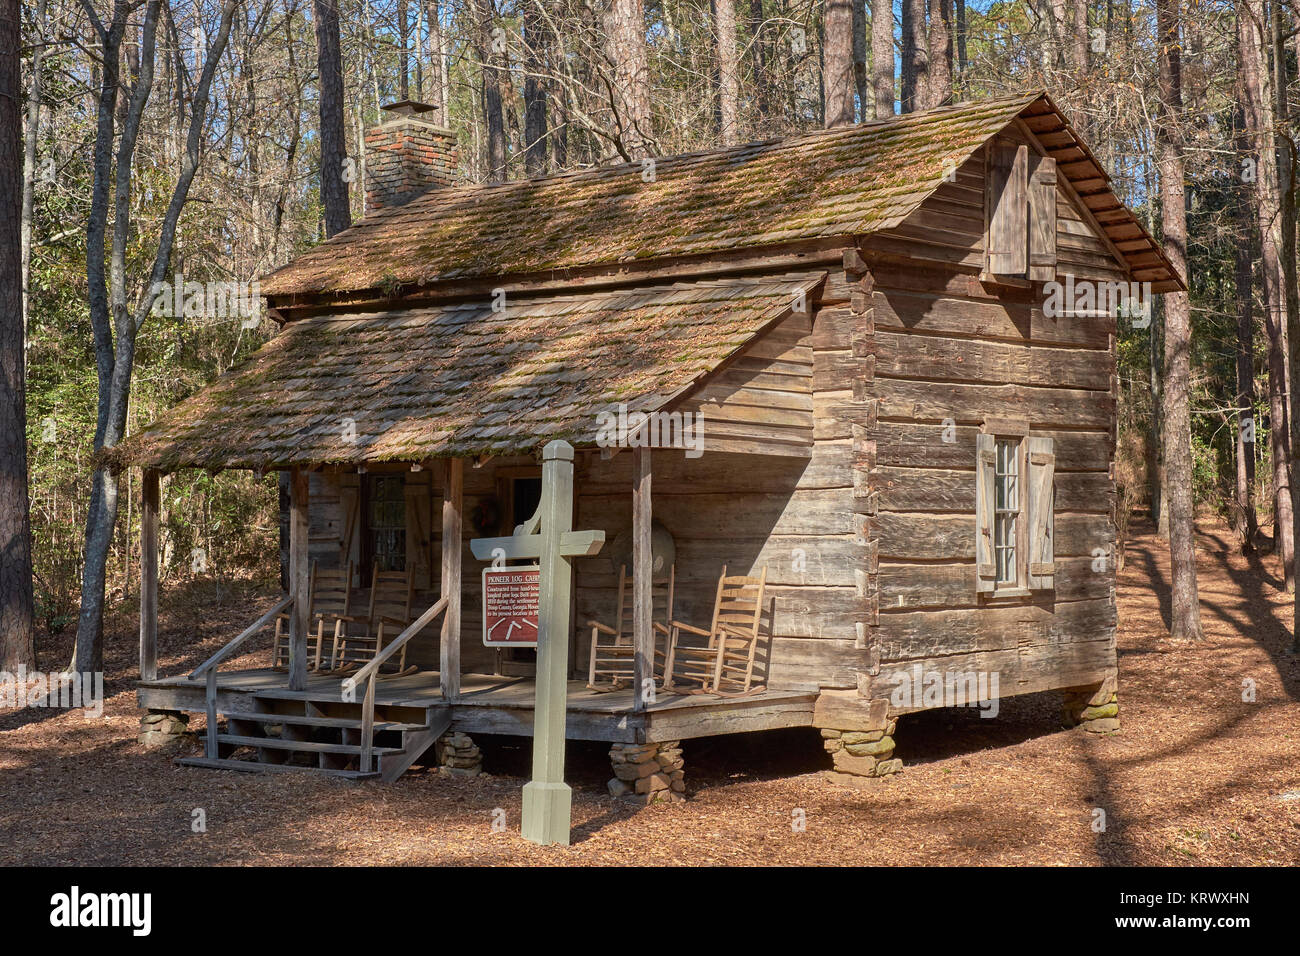 Vintage Pioneer Log Cabin Built In The 1830u0027s On Display In Calloway  Gardens, Pine Mountain